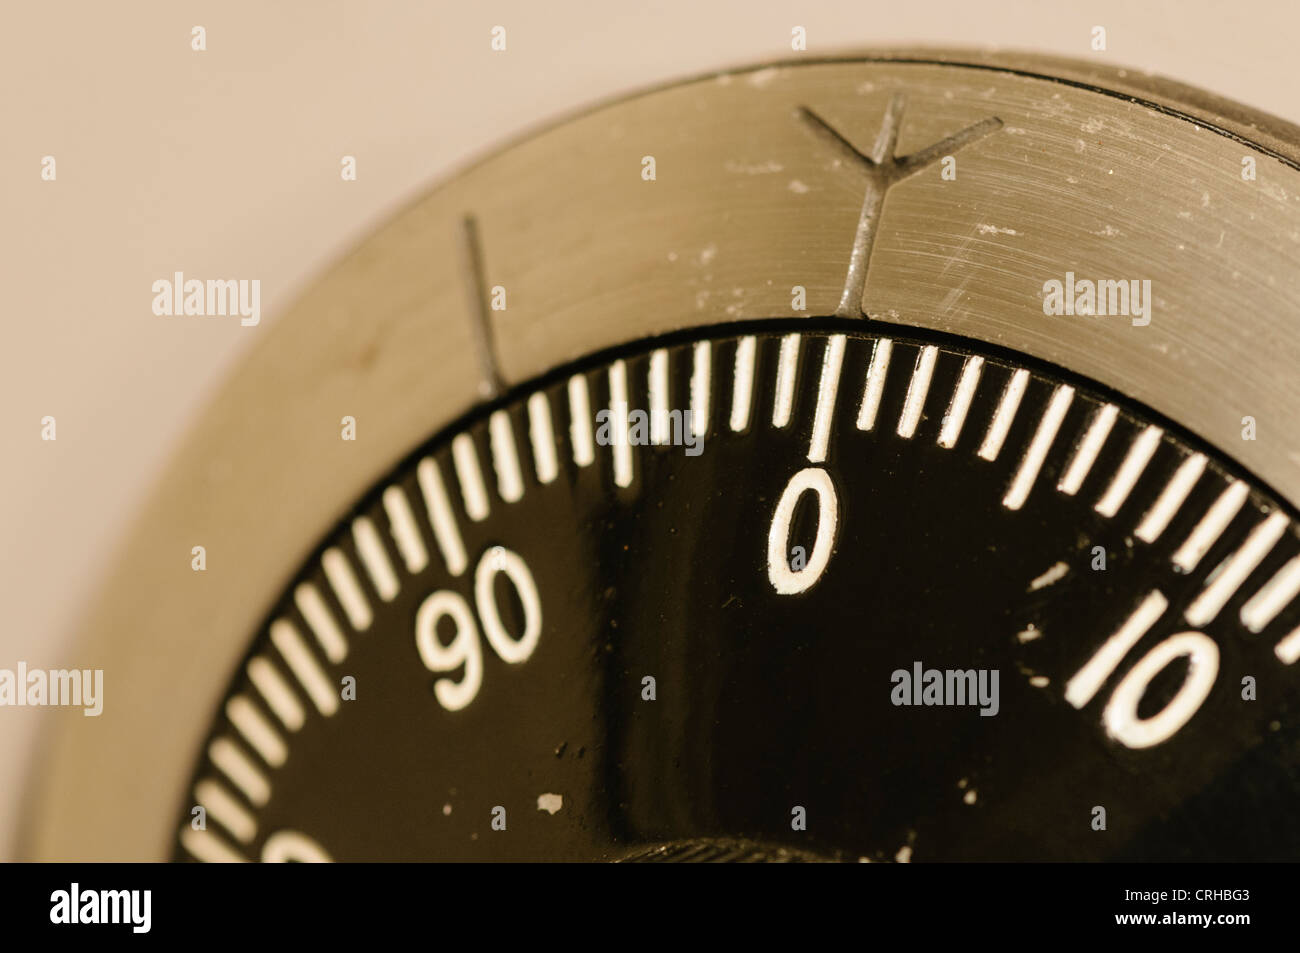 Closeup of a combination lock on a military-grade secure safe with the dial set to 0 - Stock Image